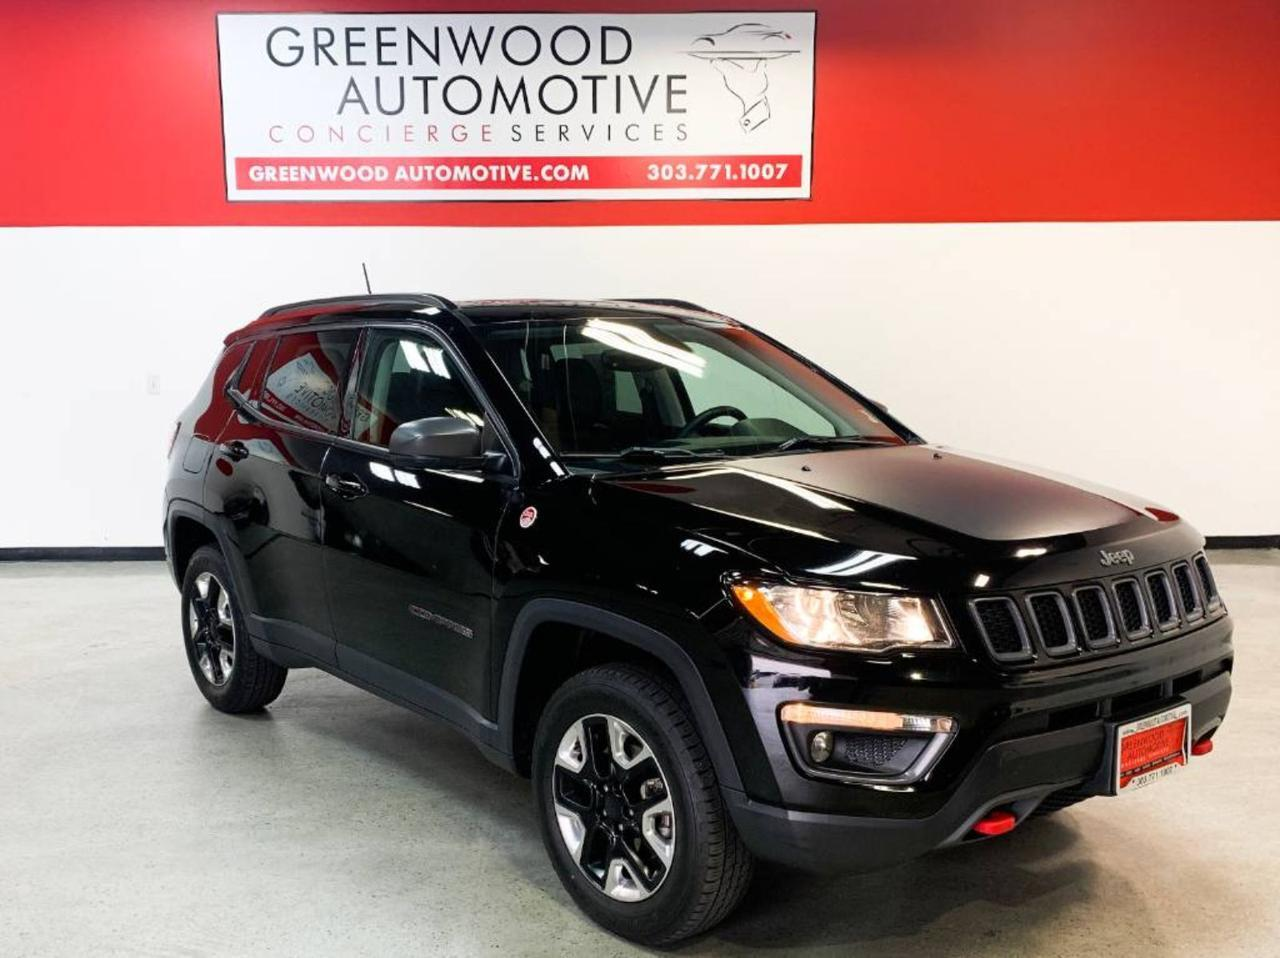 2018 Jeep Compass Trailhawk Greenwood Village CO